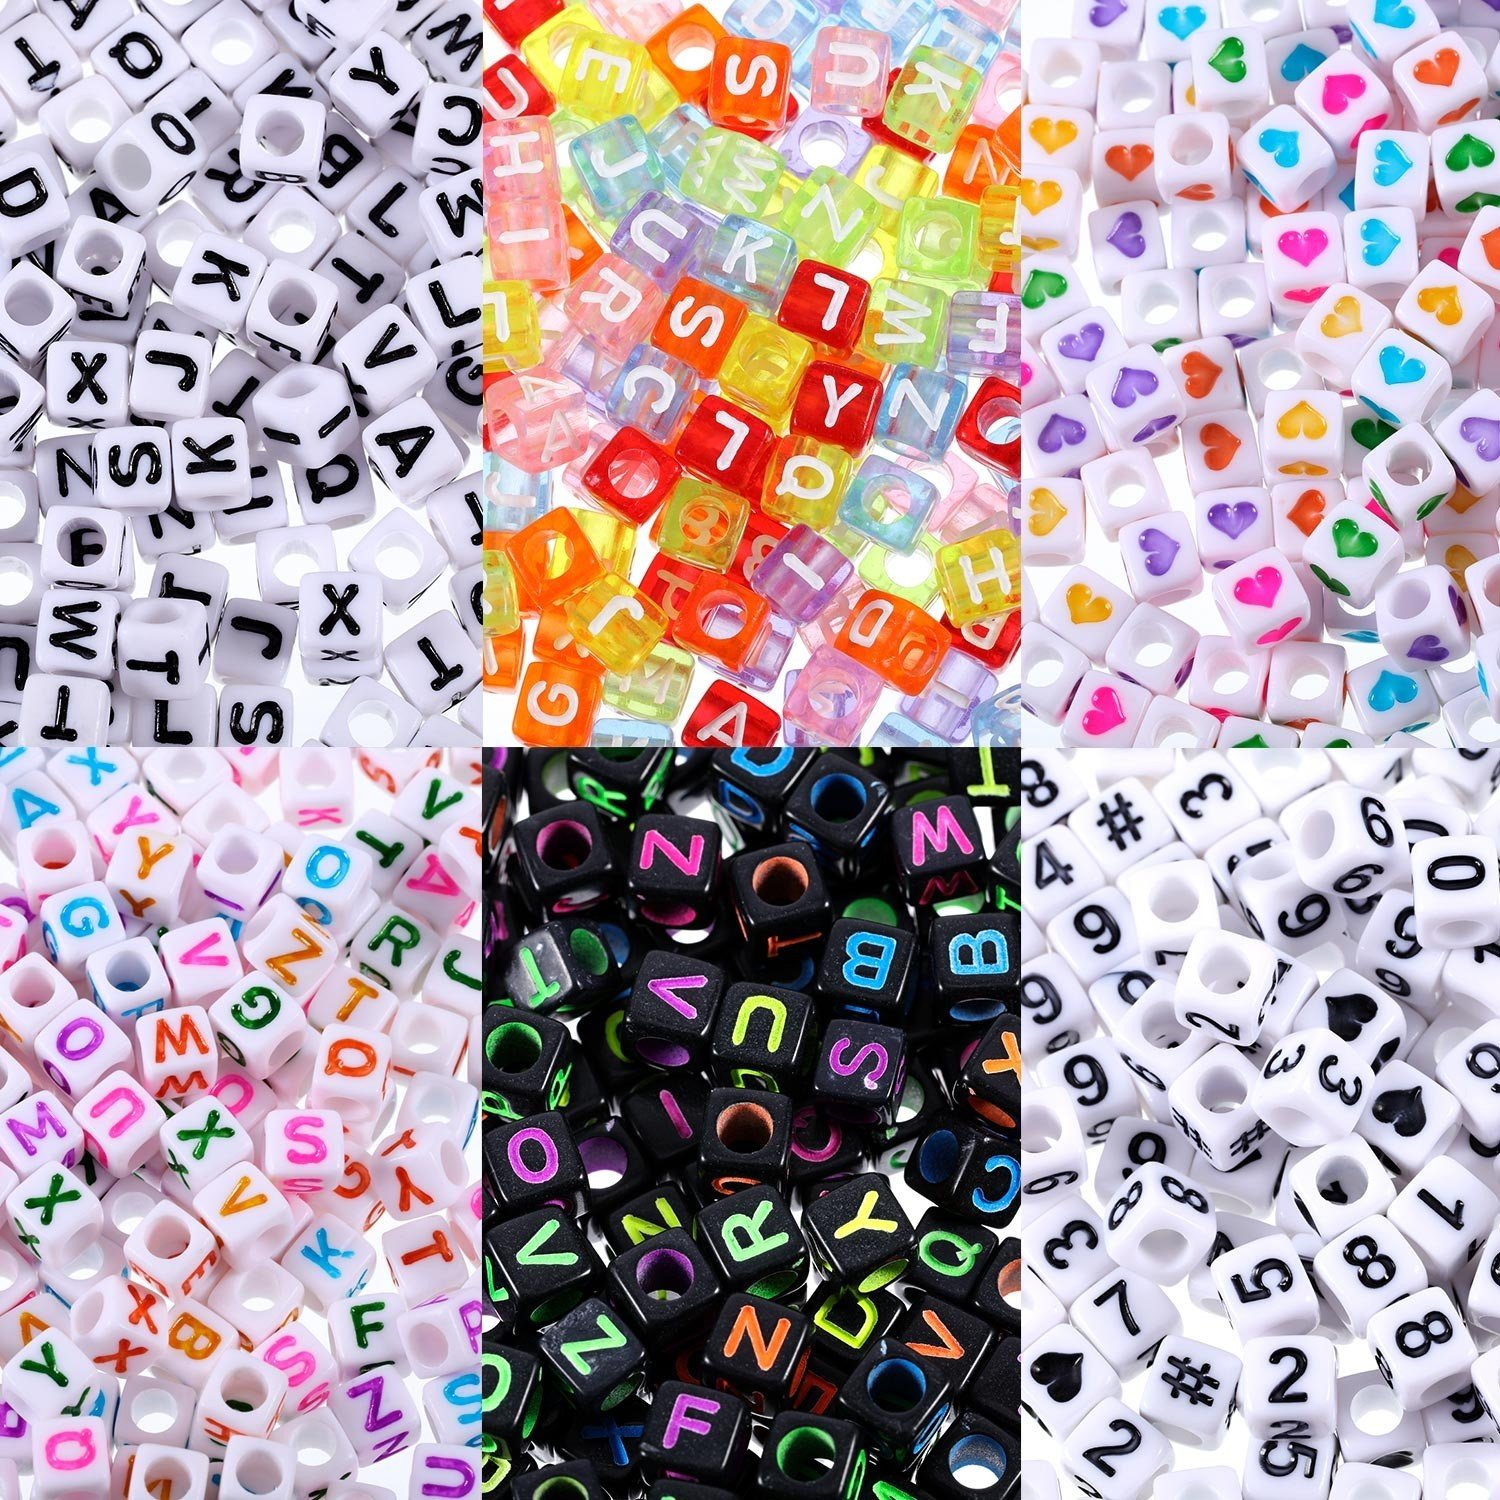 1200 Pieces 6 mm Plastic Mixed Color Alphabet Letter Beads, Number and Heart Cube Beads for DIY Jewelry Making, Necklaces, Craft Project, Bracelets, Key Chains and Kids Jewelry Chengu